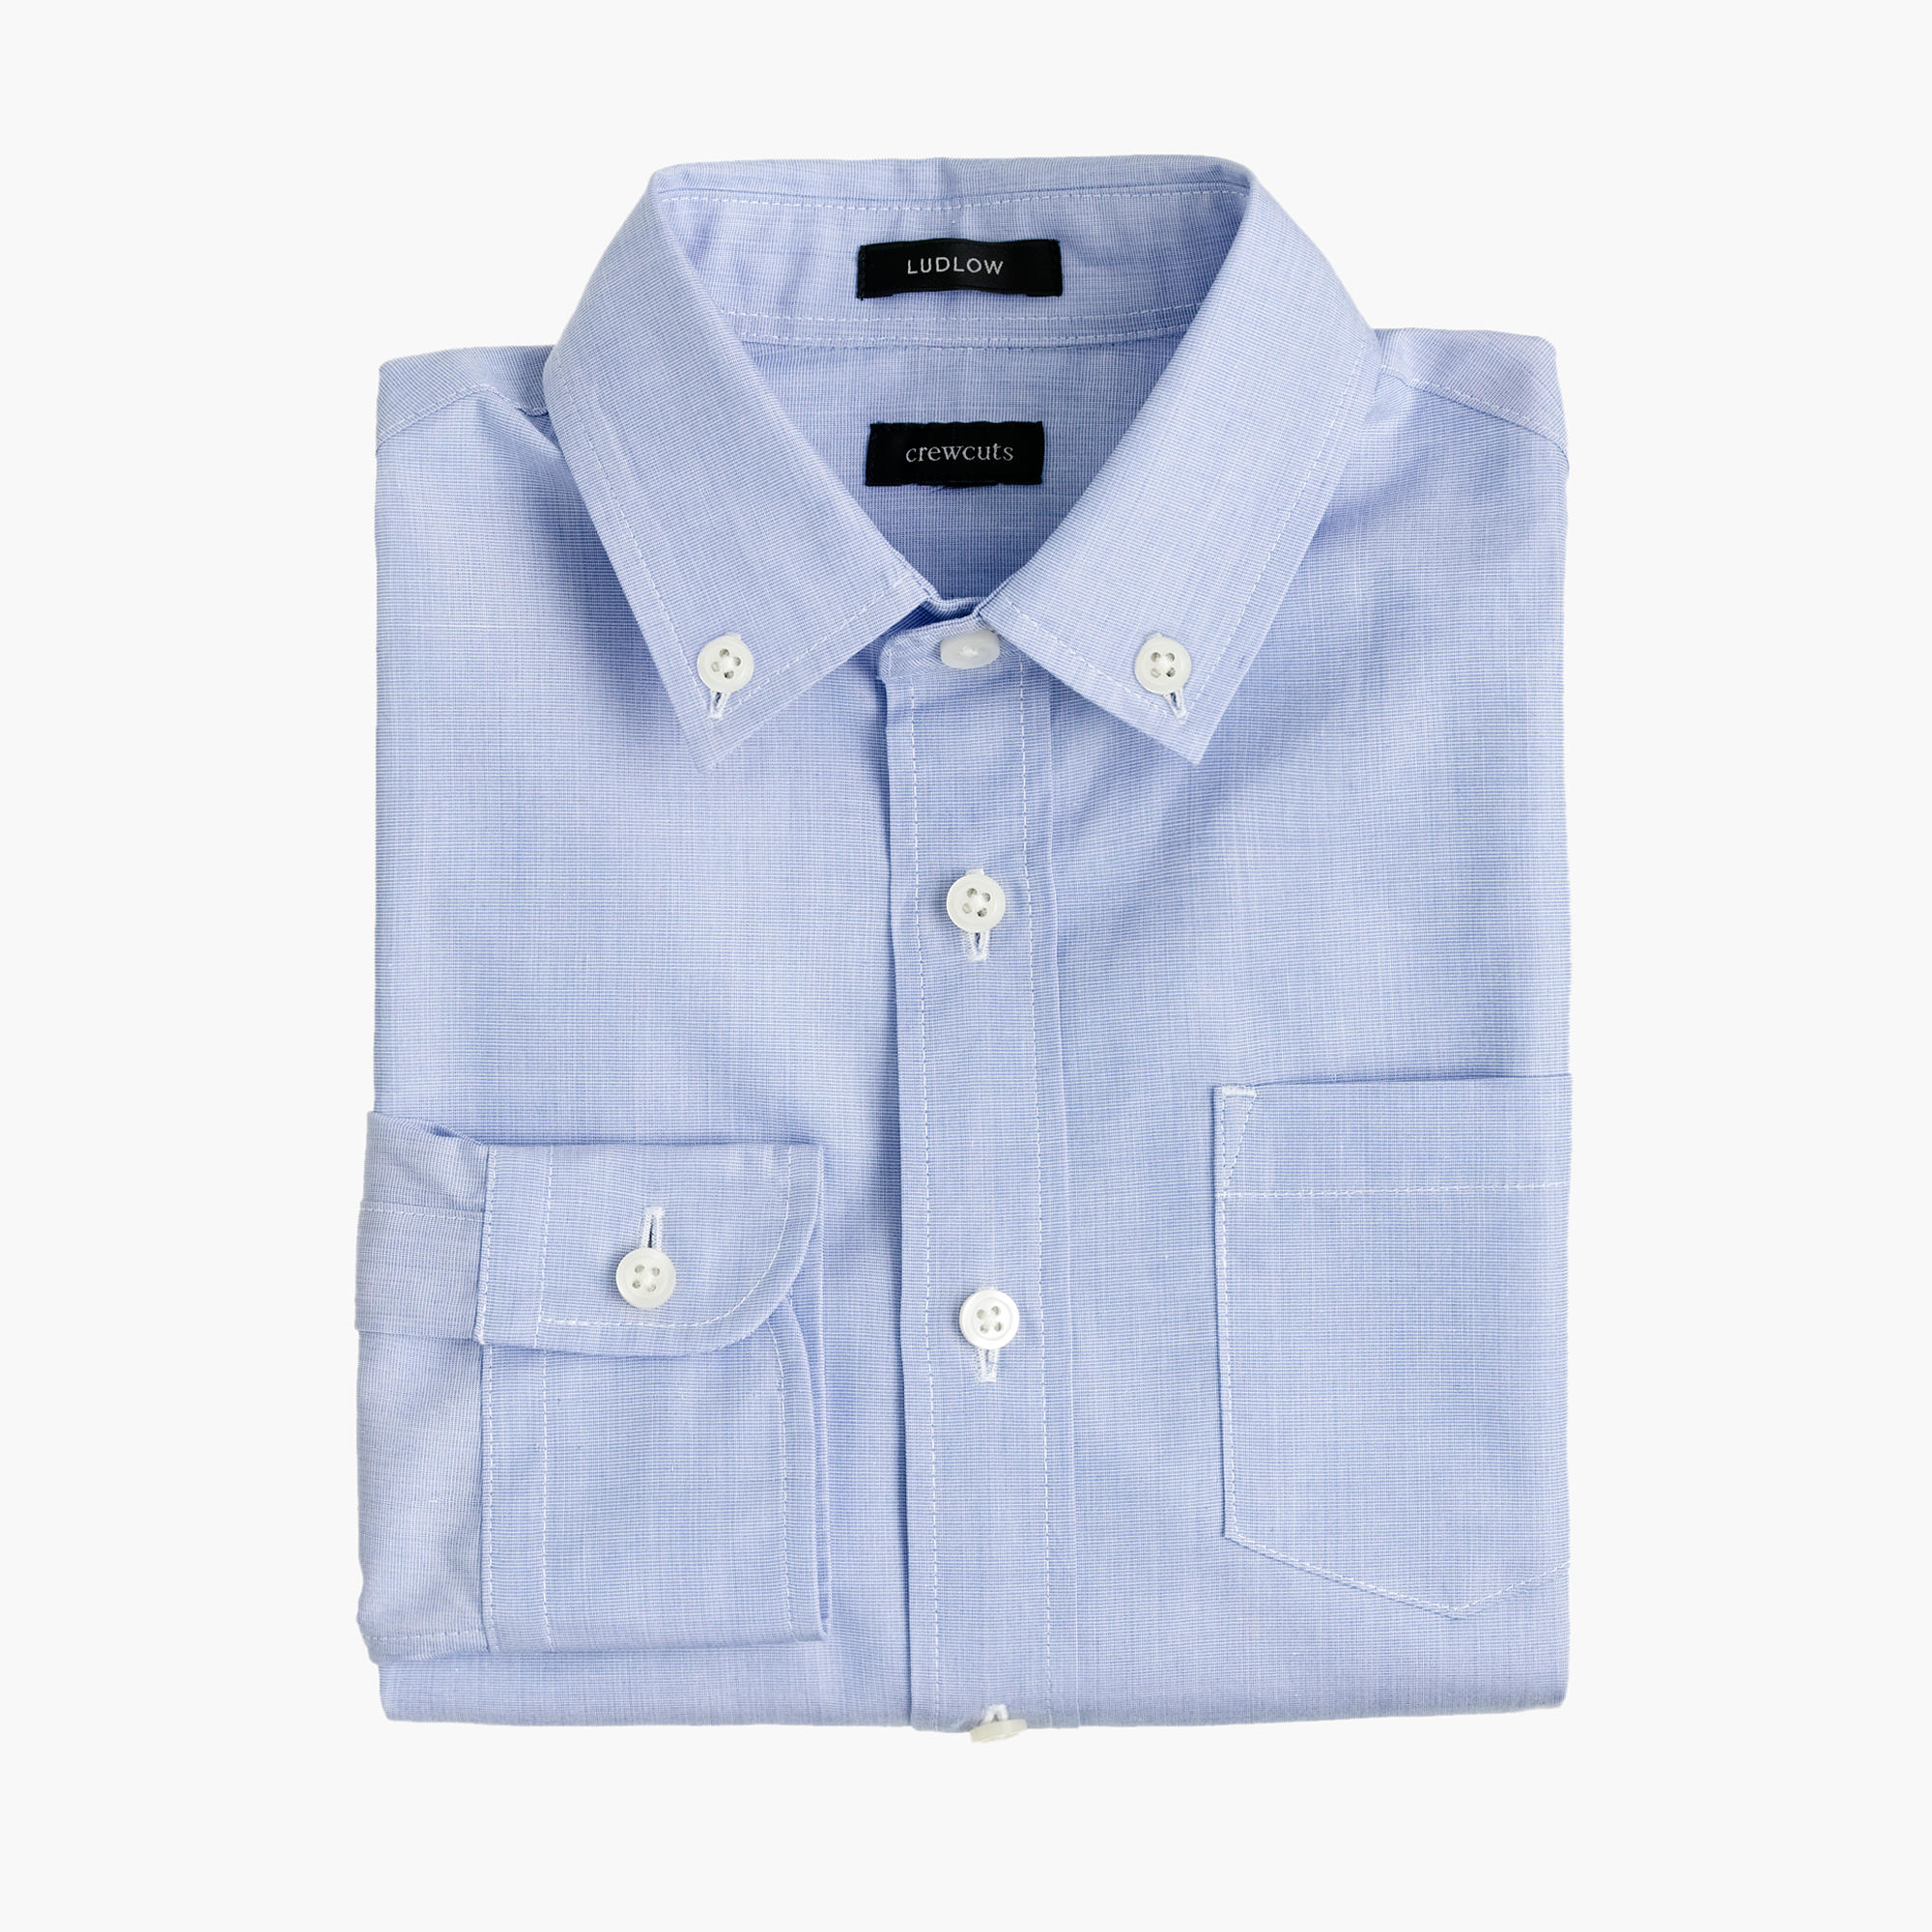 Boys 39 button down solid ludlow shirt boy ludlow j crew for Solid color button up shirts